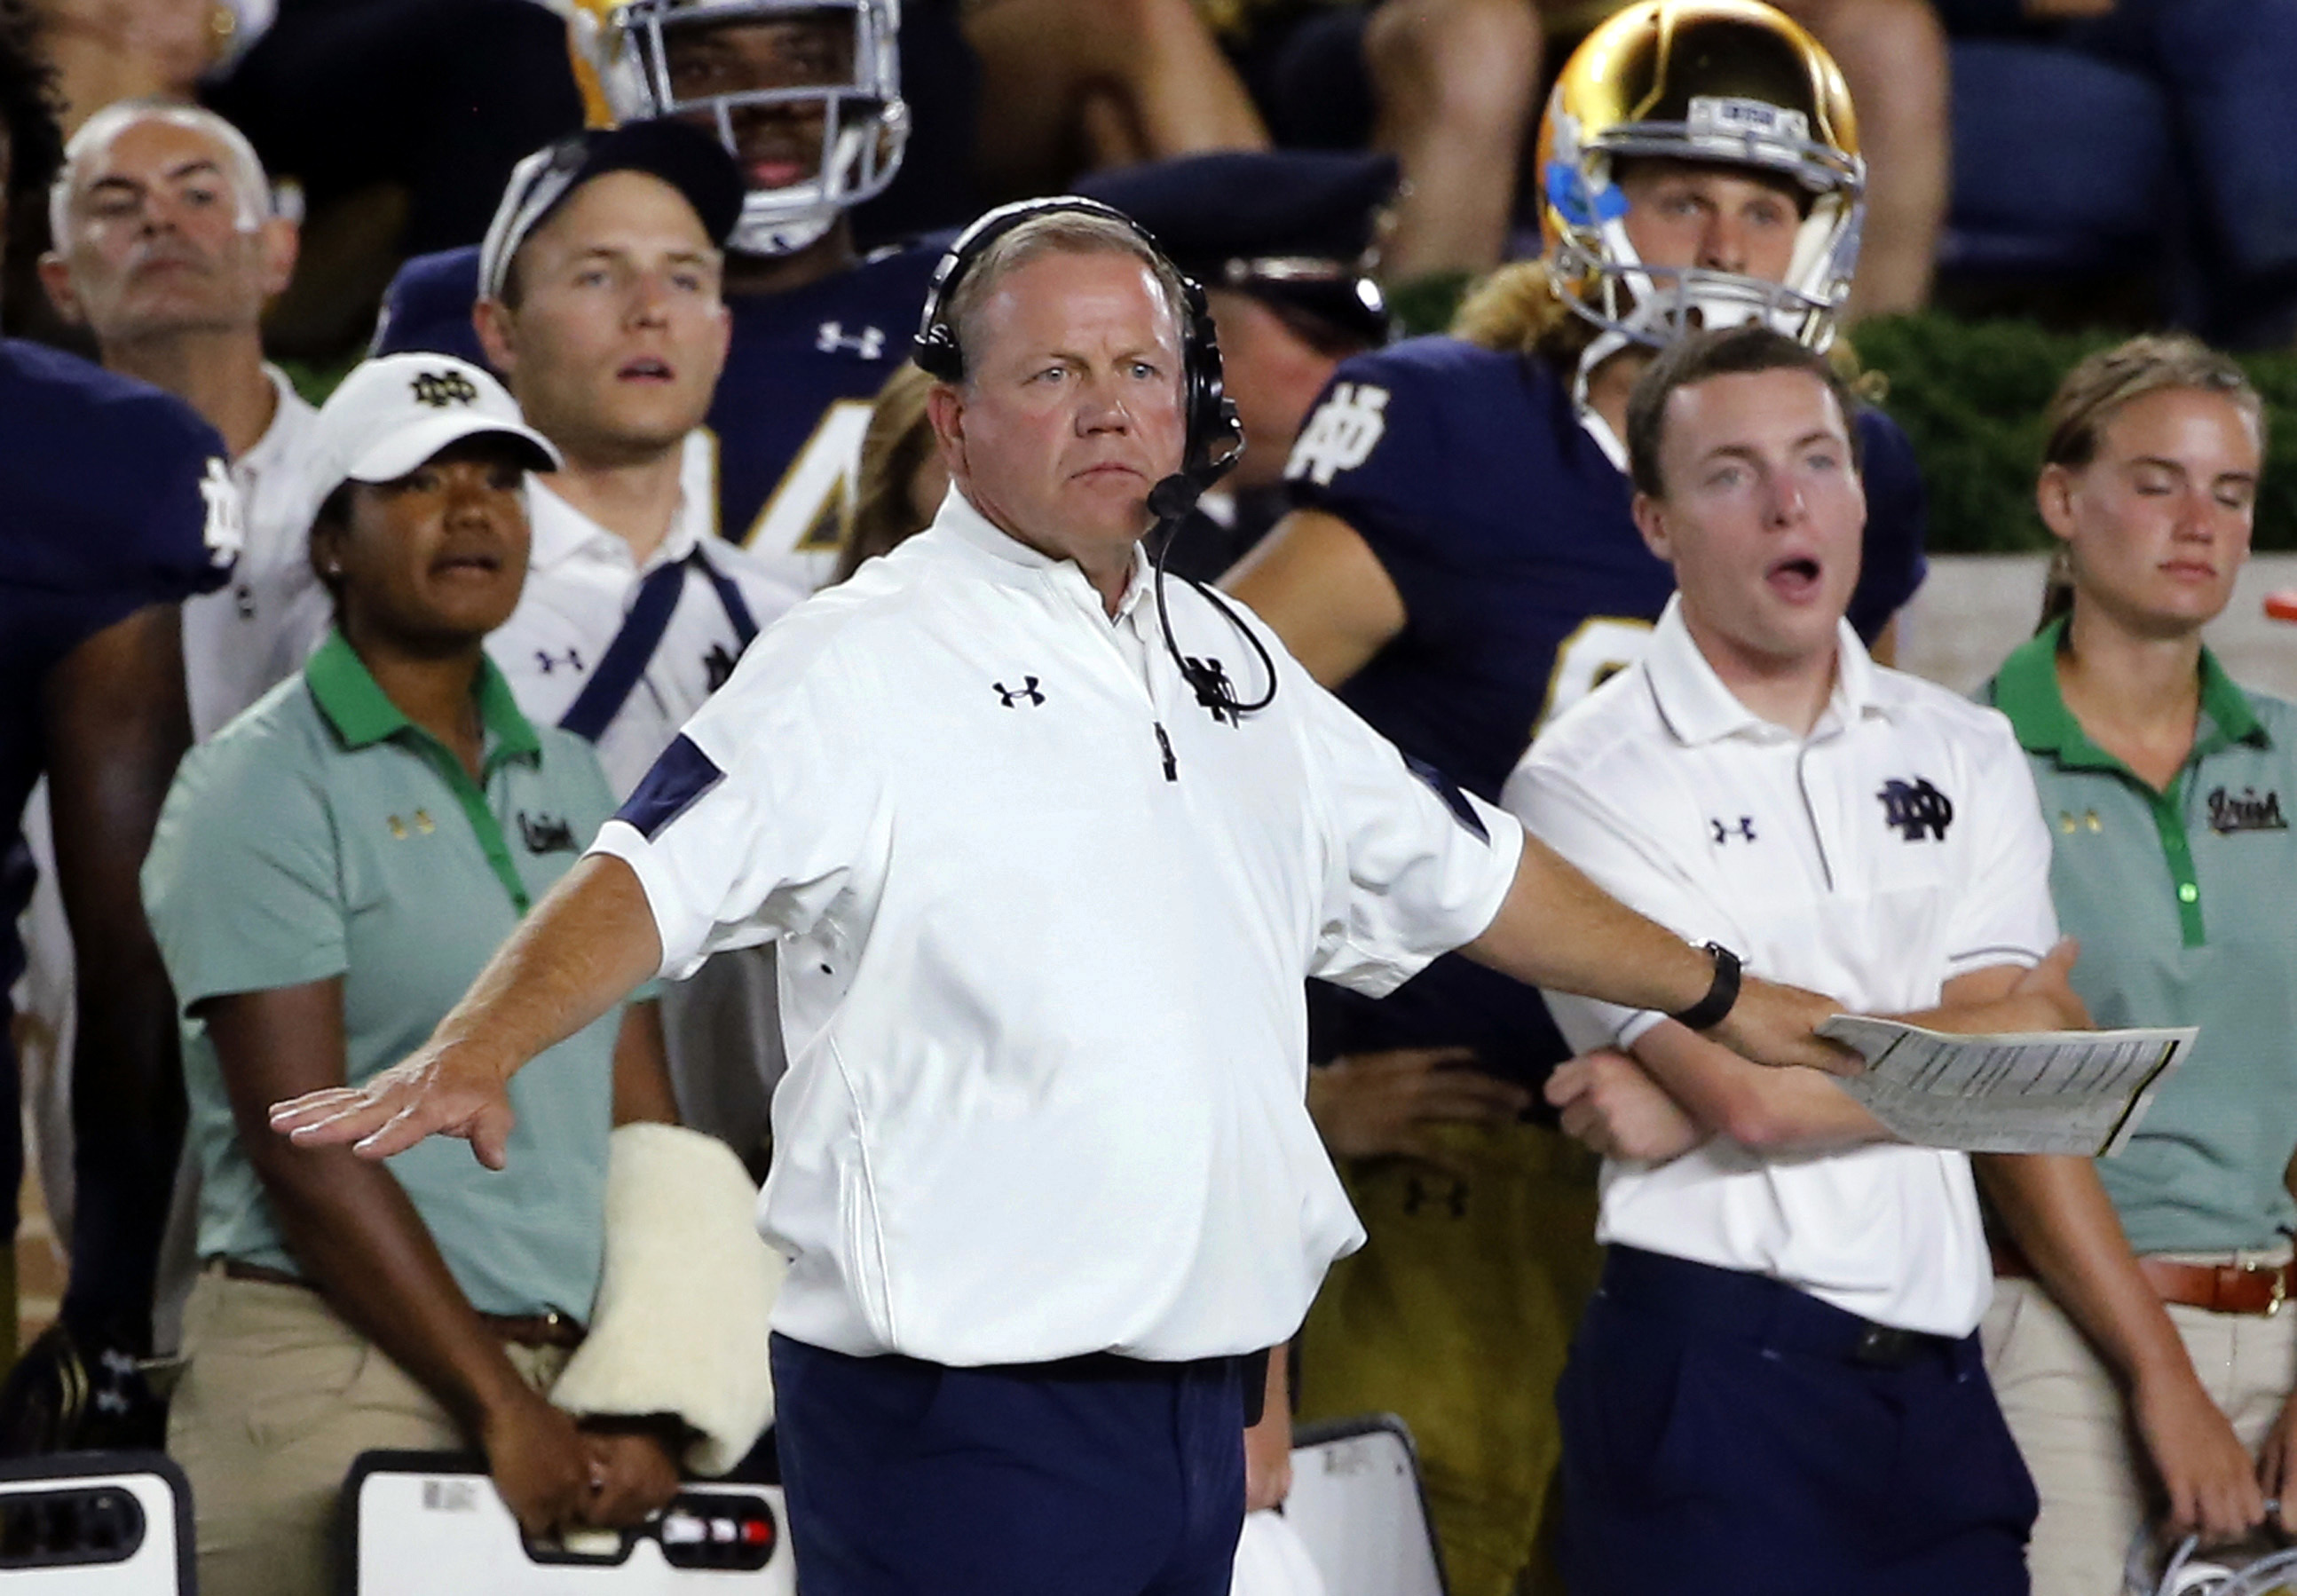 FILE - In this Sept. 17, 2016, file photo, Notre Dame head coach Brian Kelly signals from the sideline during the first half of an NCAA college football game against Michigan State in South Bend, Ind. Notre Dame keeps shooting itself in the foot with spec